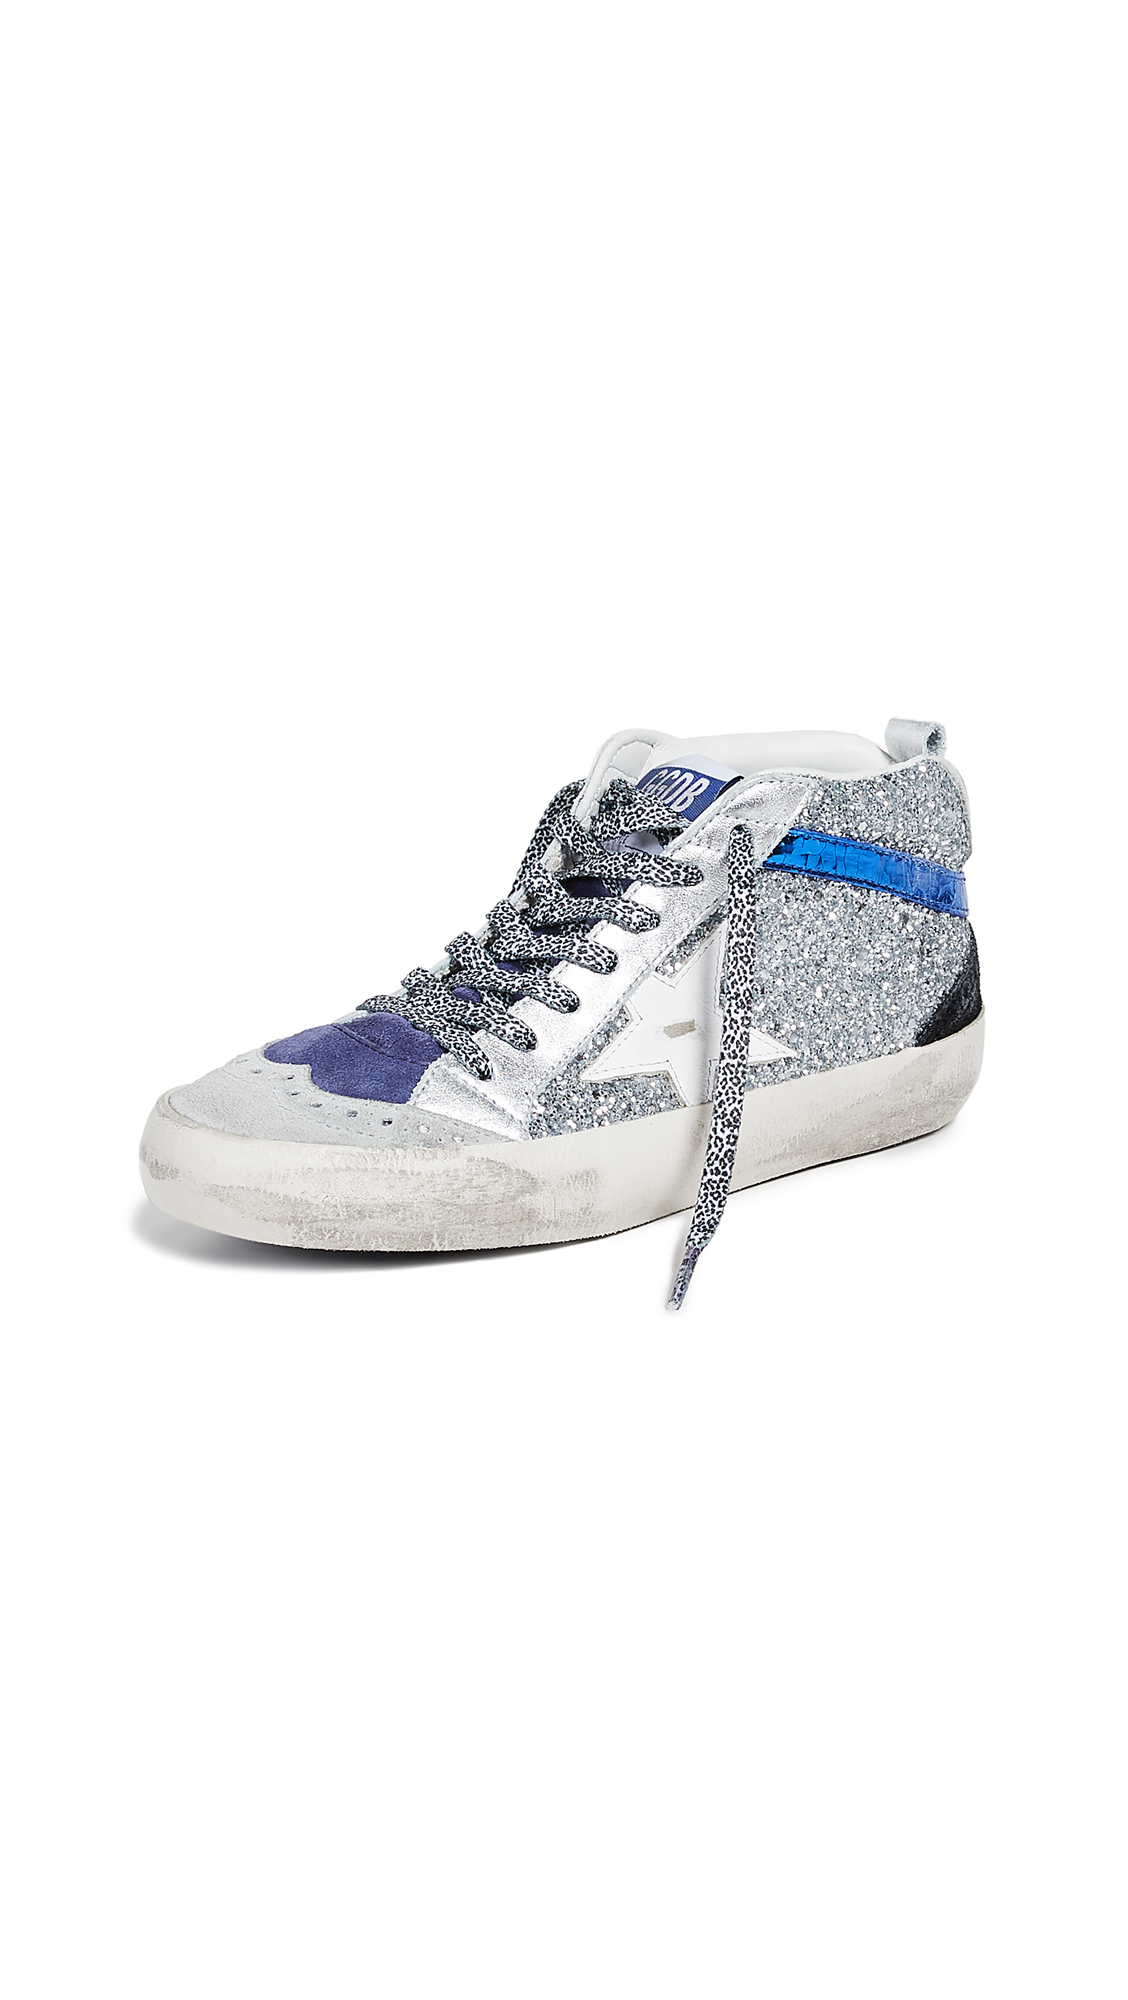 Golden Goose Mid Star Sneakers - Silver Glitter/White